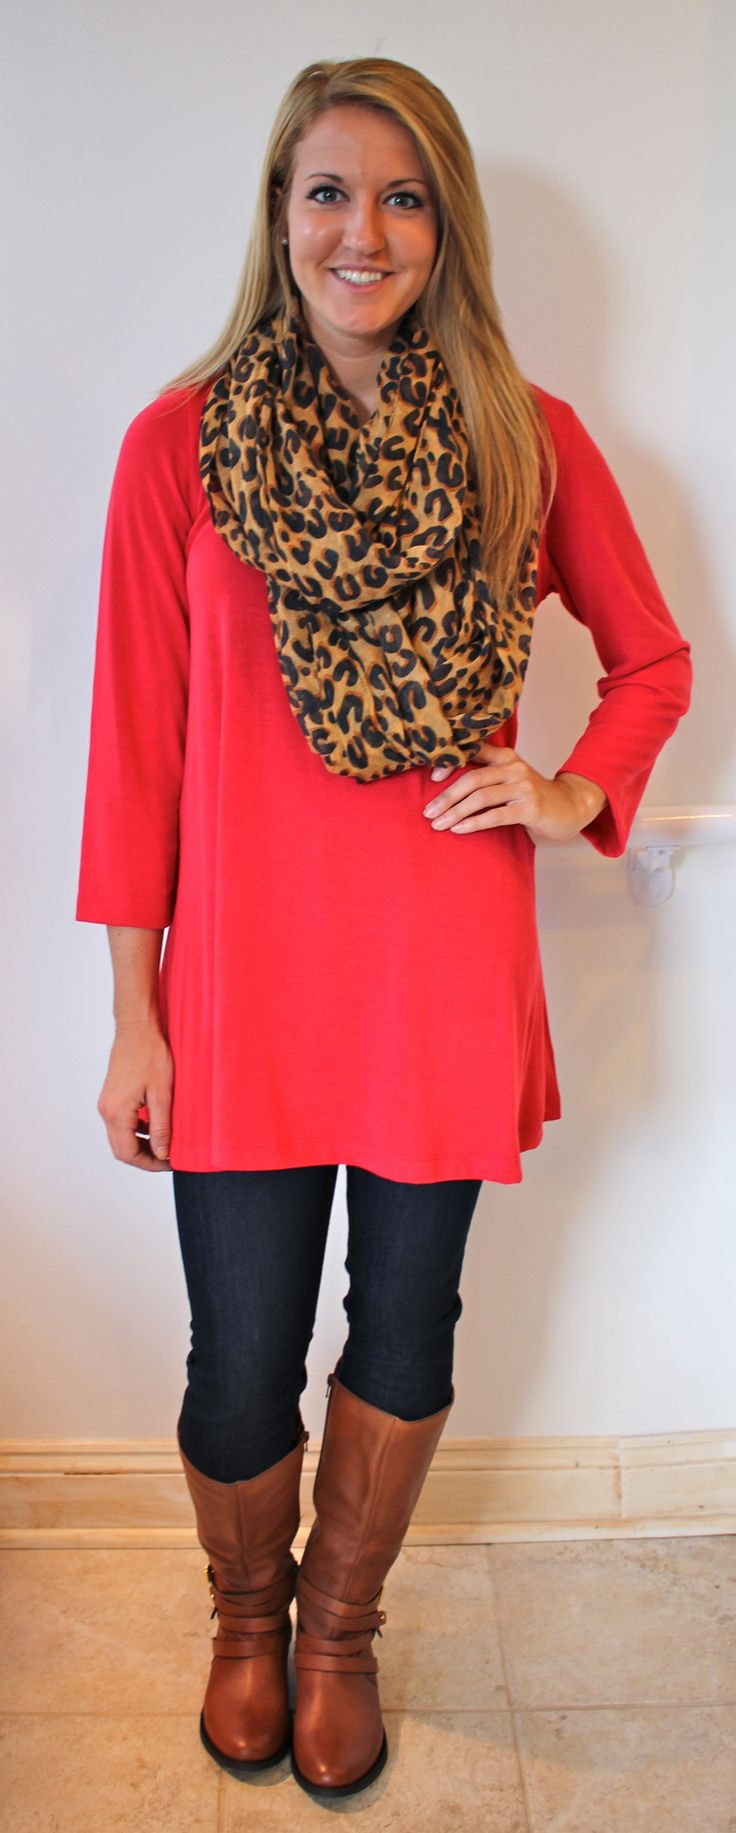 1000  images about Outfit with boots on Pinterest | Leopard print ...